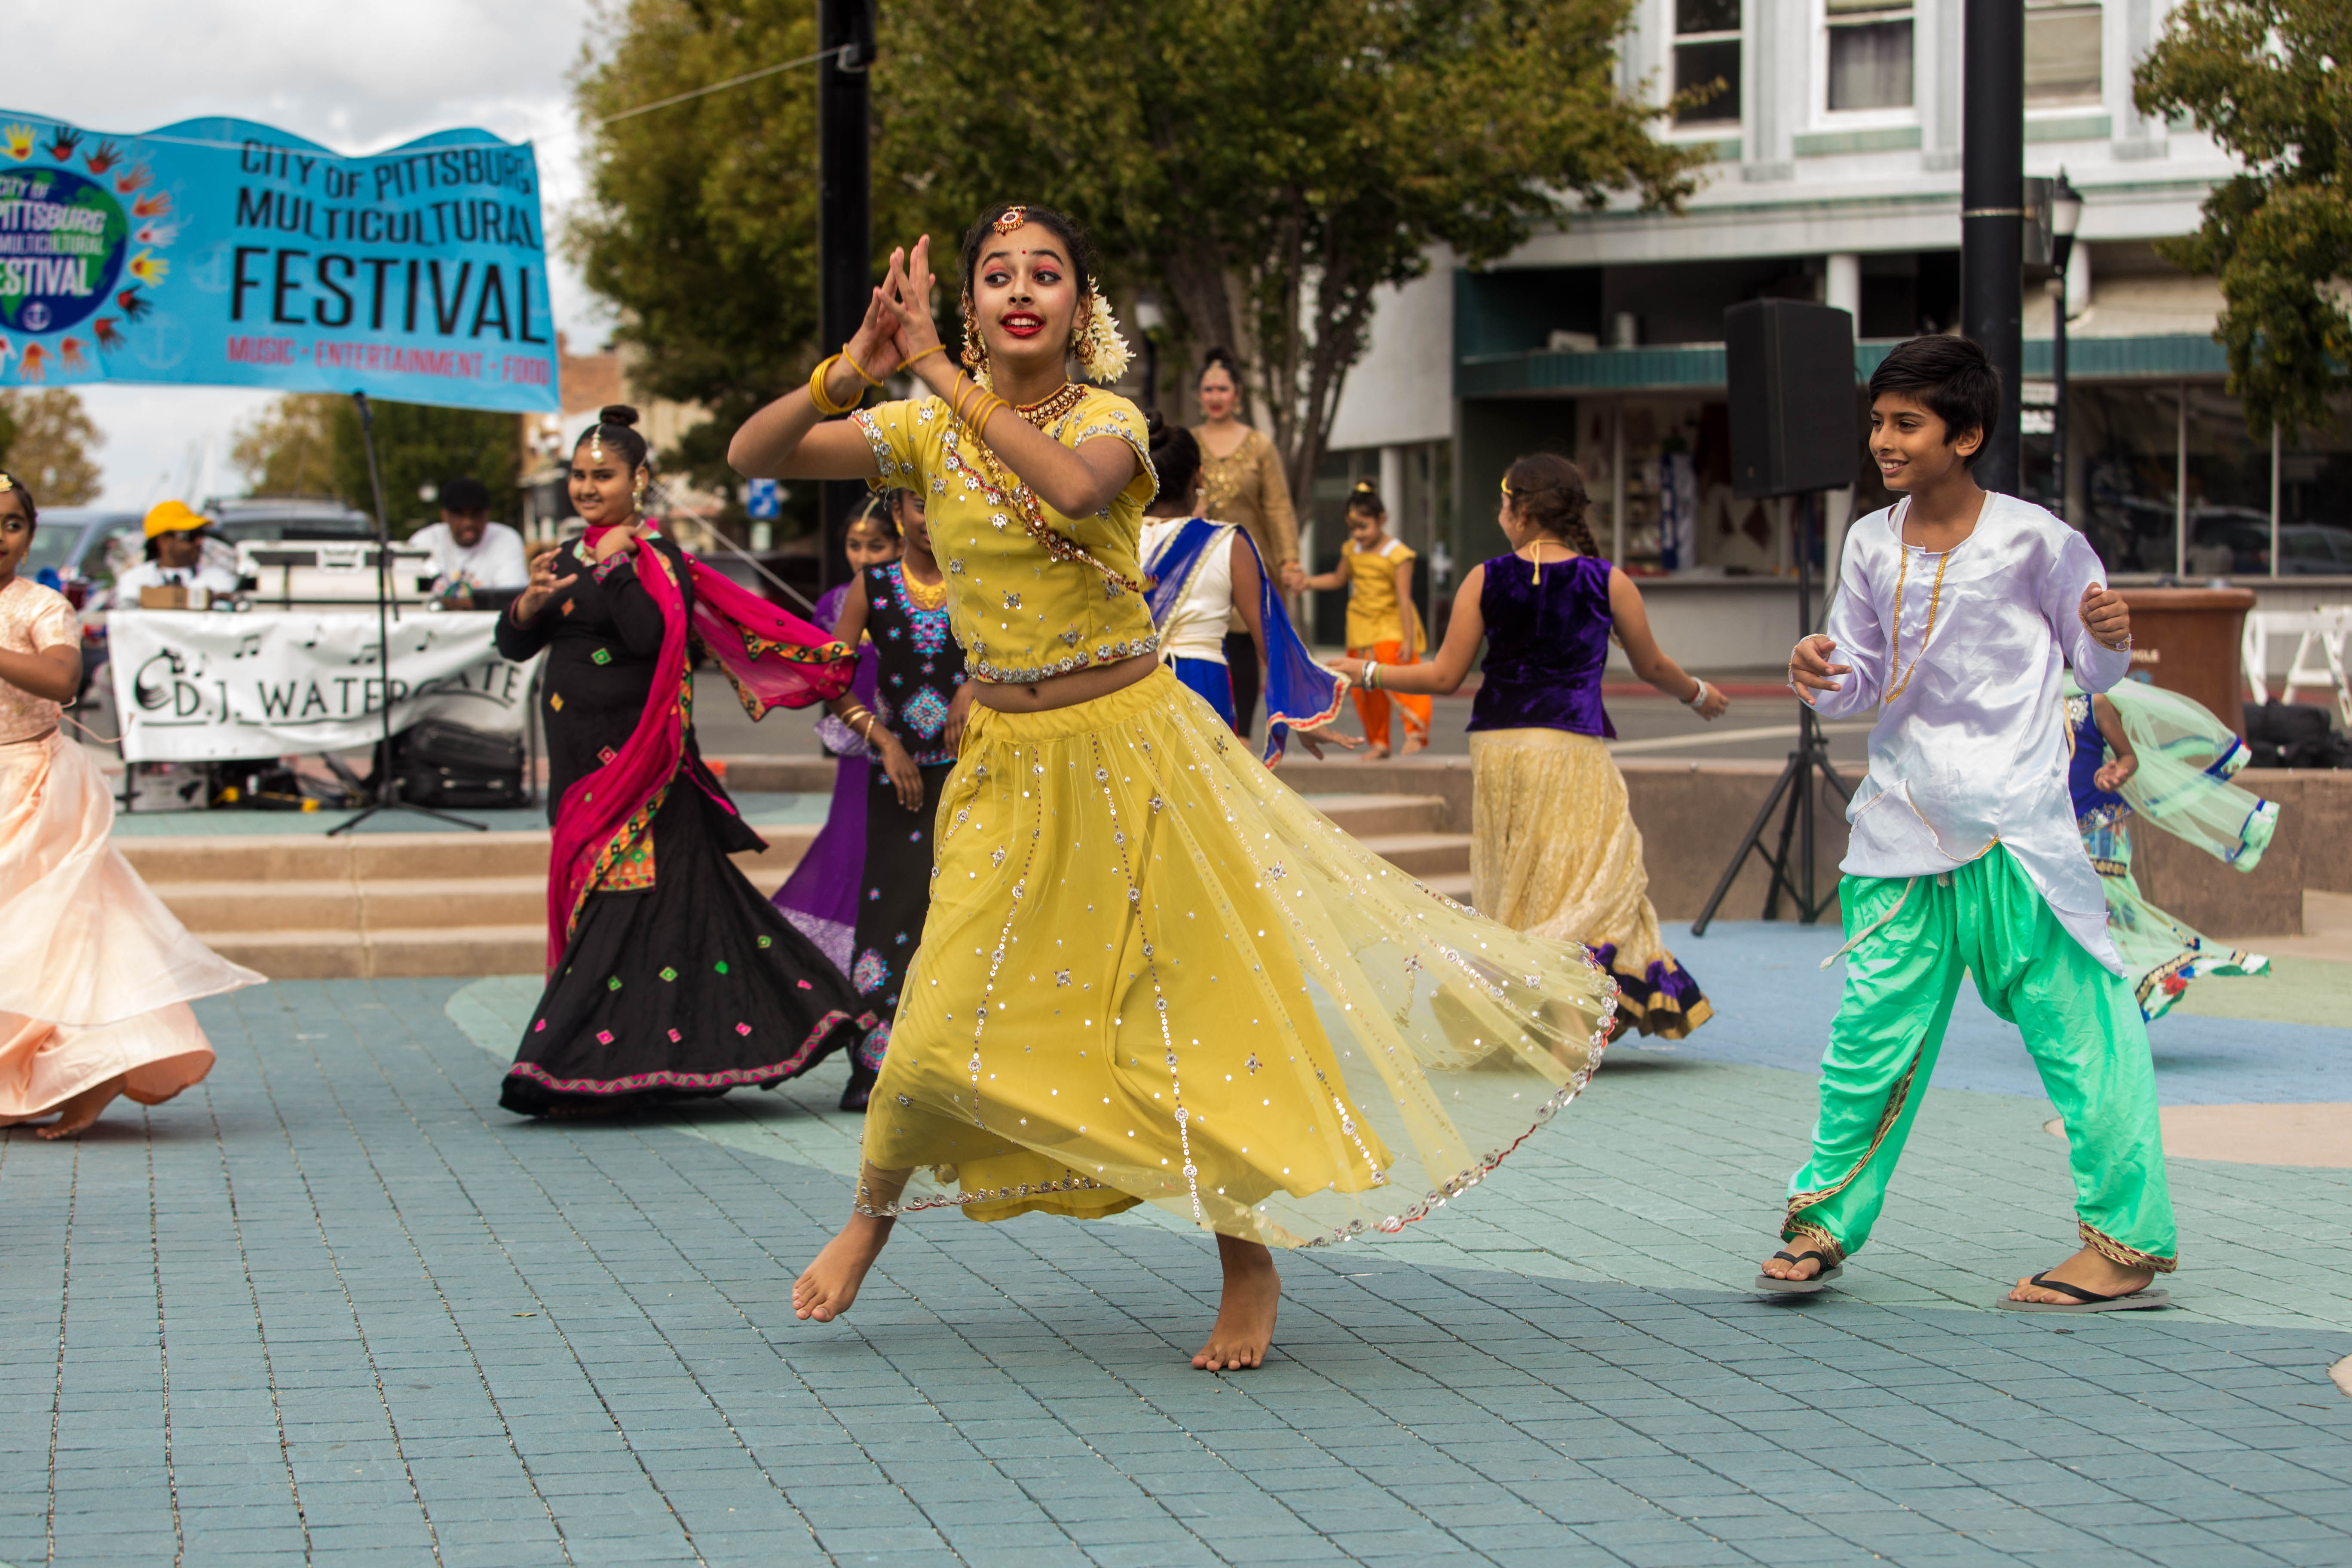 CITY_PITTSBURG_MULTICULTURAL_OCTOBER_2016 (679)